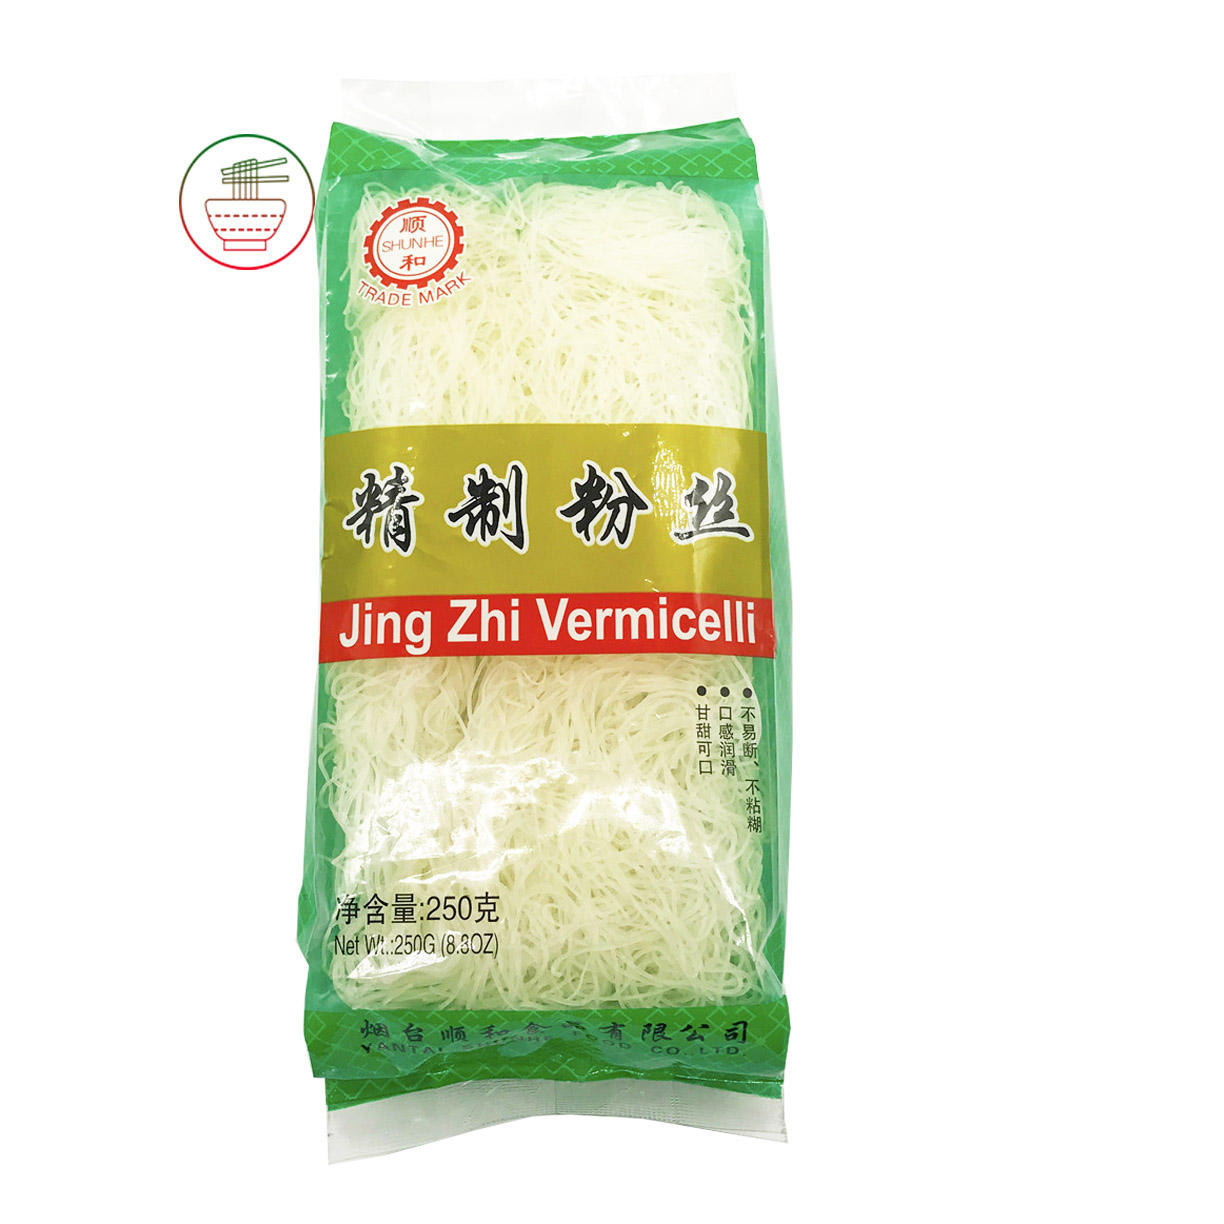 Trade Assurance Supplier green food rice vermicelli noodles